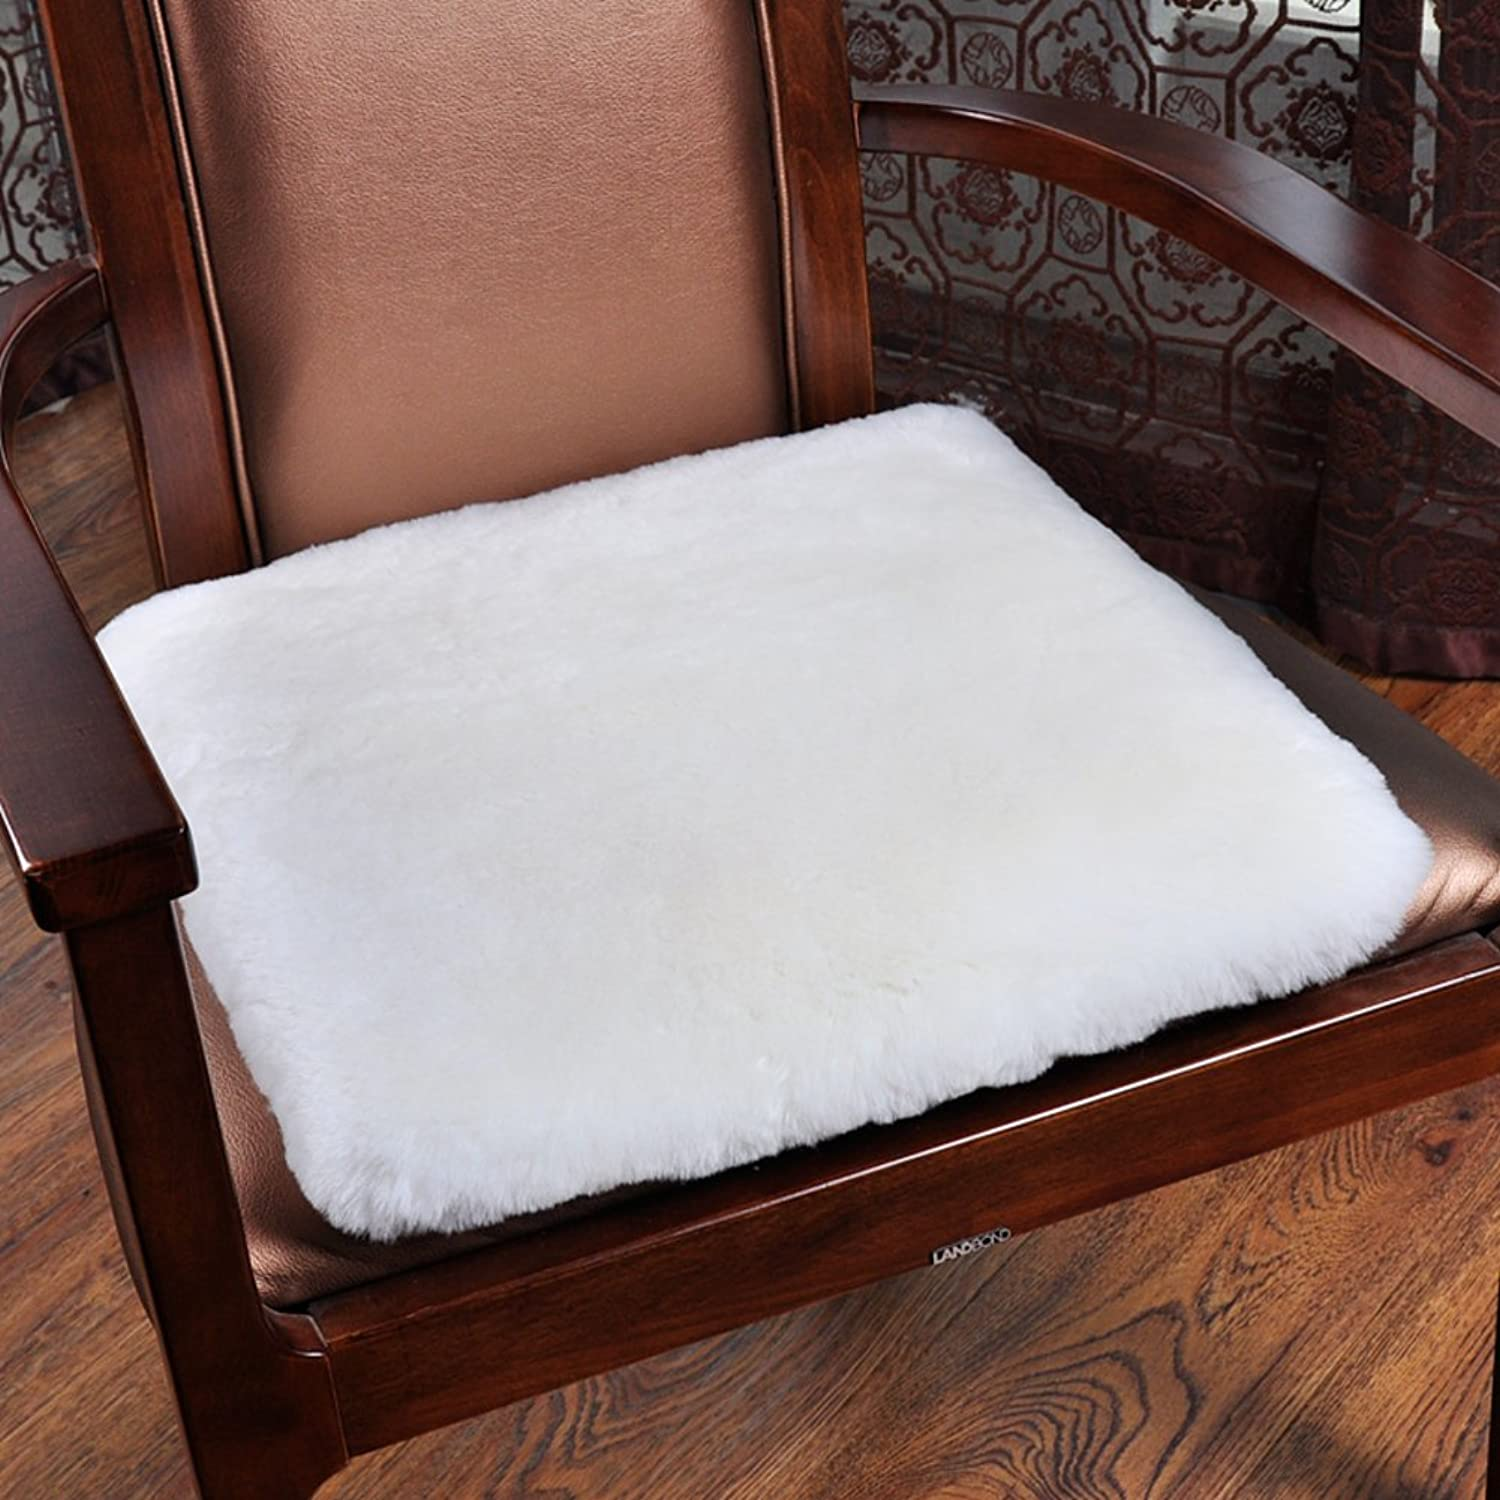 Pure color winter seat cushioning,Solid wood chair cushion Sofa cushions Student Office chair cushion-C 50x50cm(20x20inch)